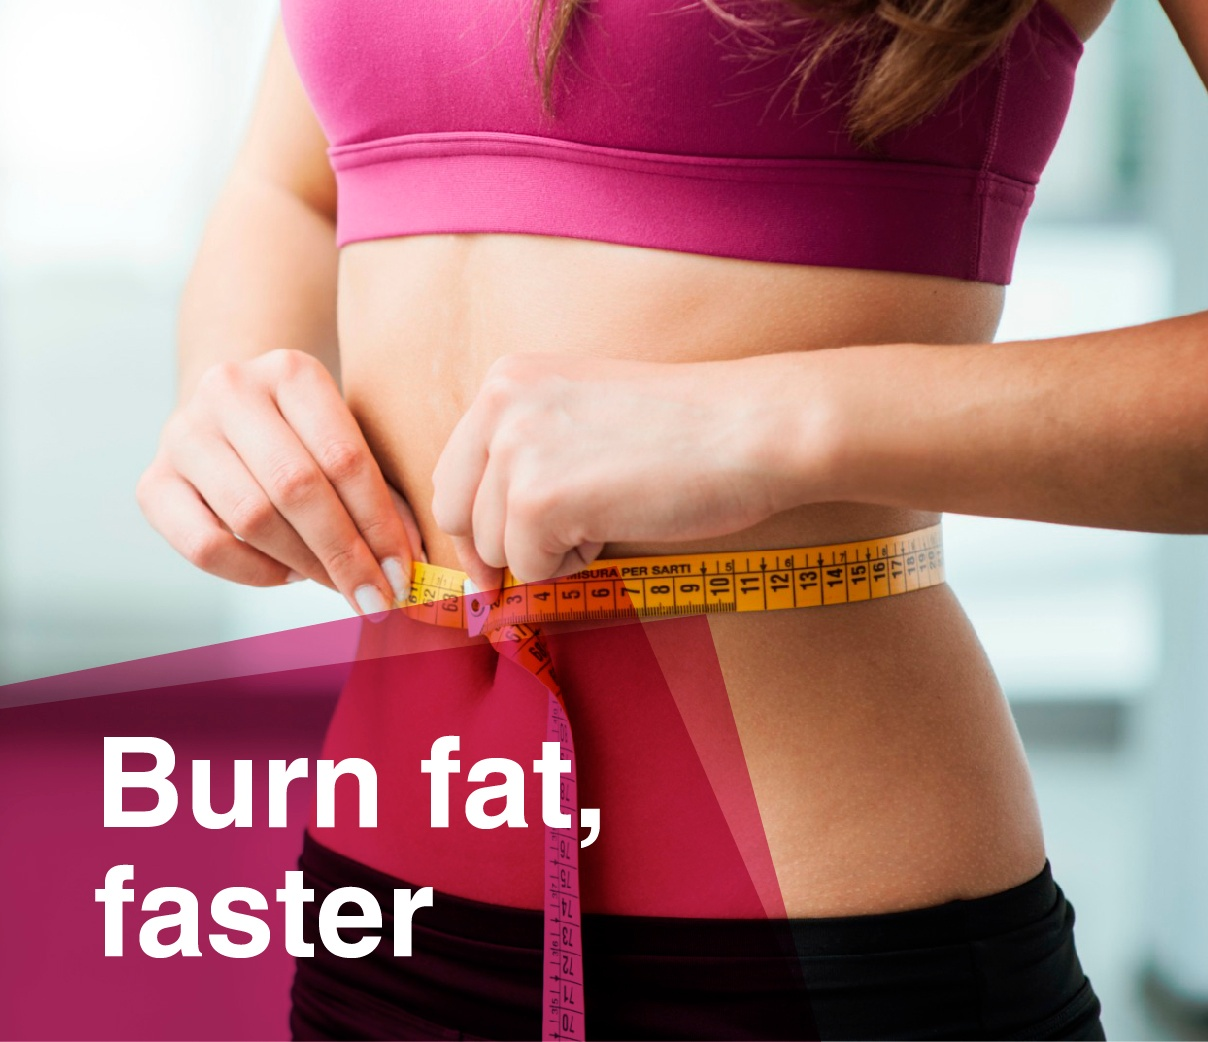 lipotropic injections burn fat-1.jpg